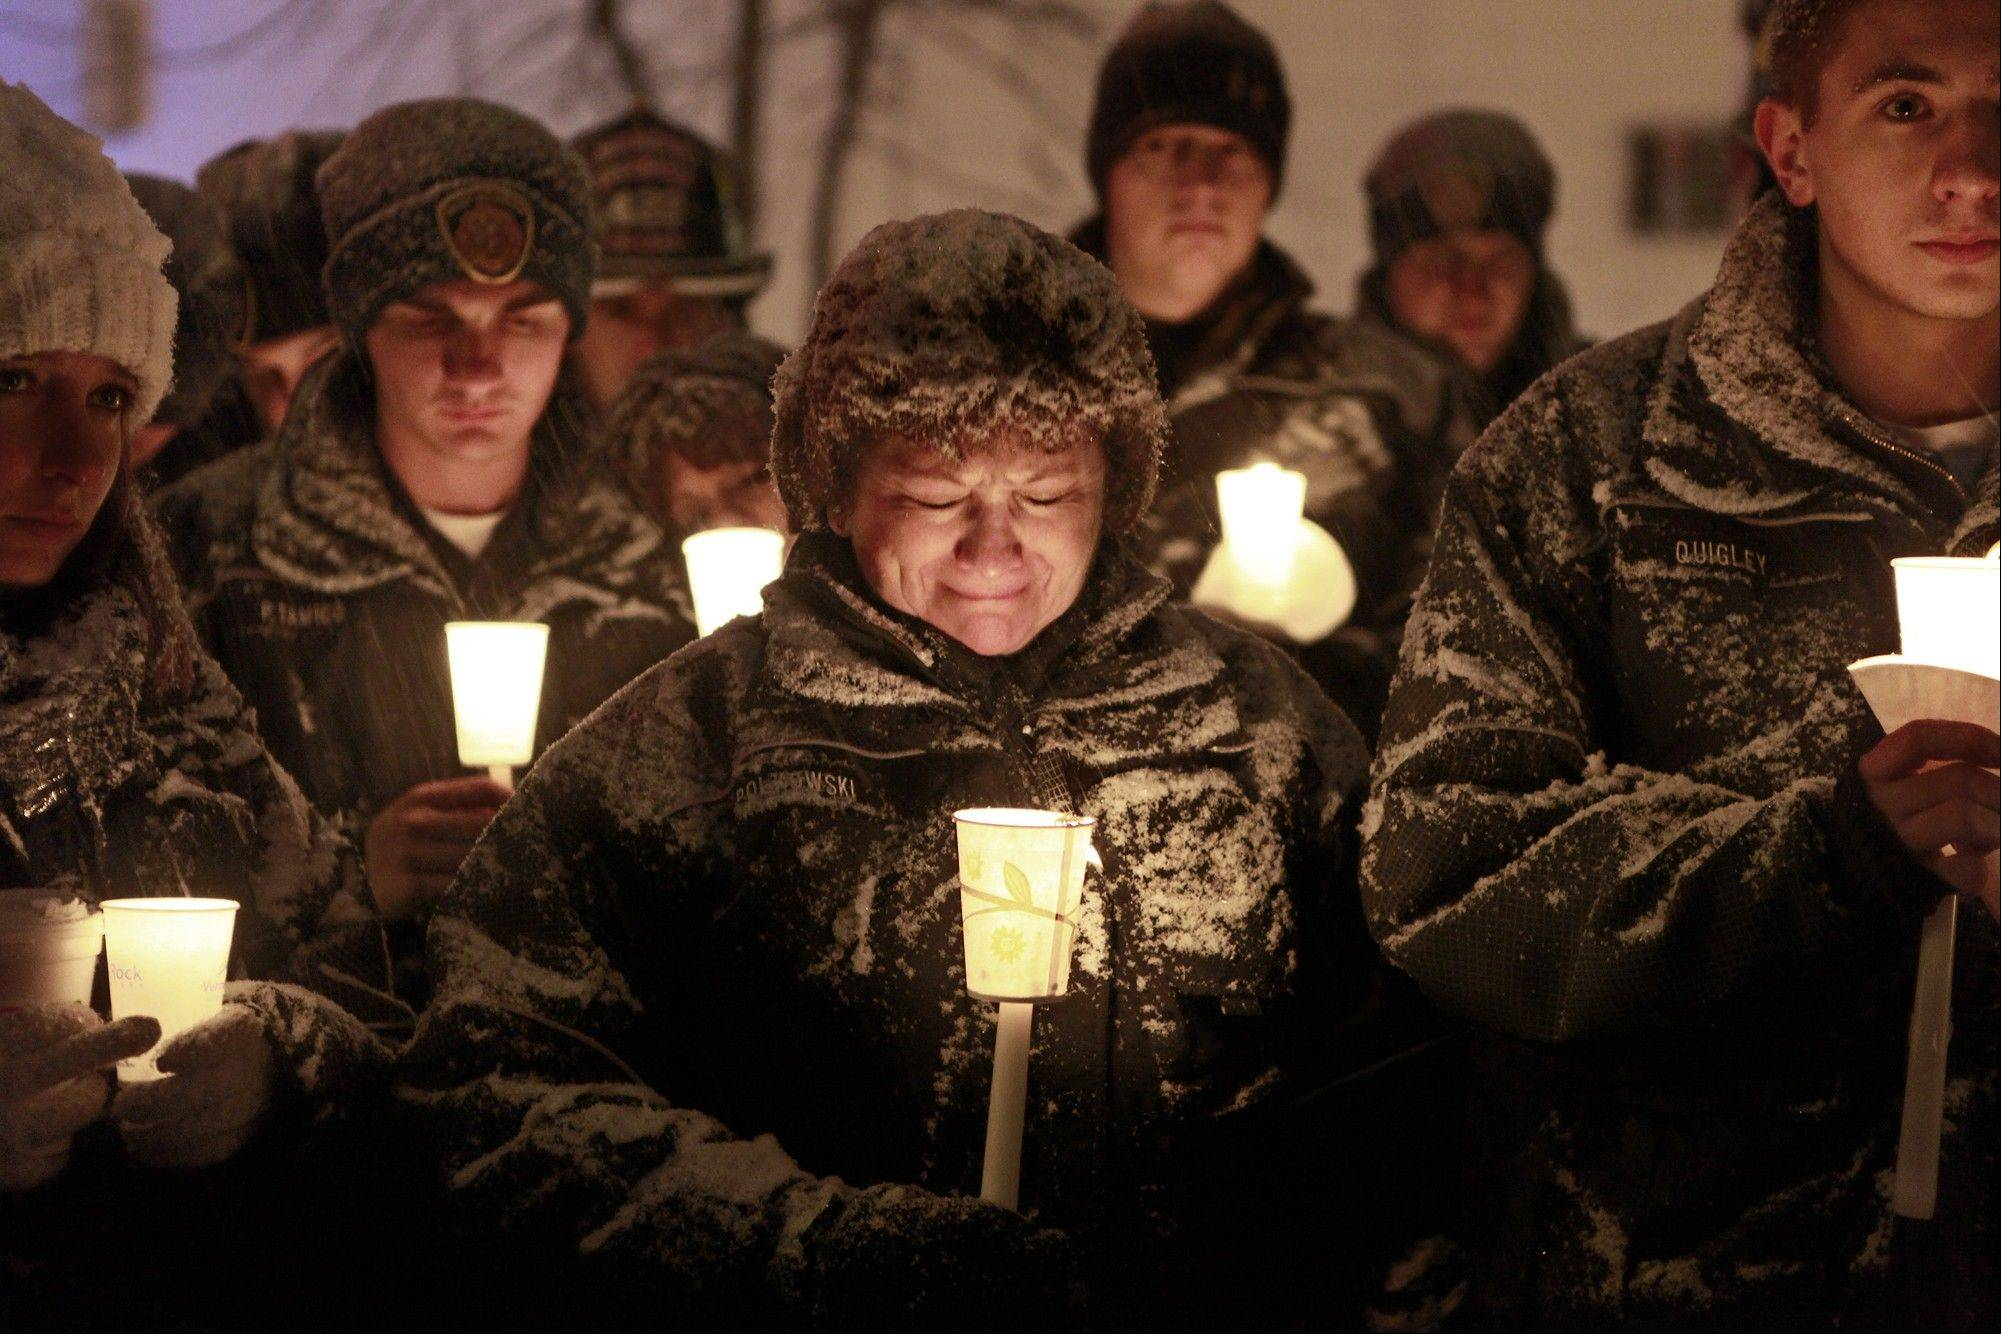 In this Wednesday, Dec. 26, West Webster firefighter Vicki Polkowski, center, sheds tears, in Webster, N.Y., as the Fireman's Prayer is read aloud at a candlelight vigil held in honor of the firefighters that were injured and killed on Christmas Eve.